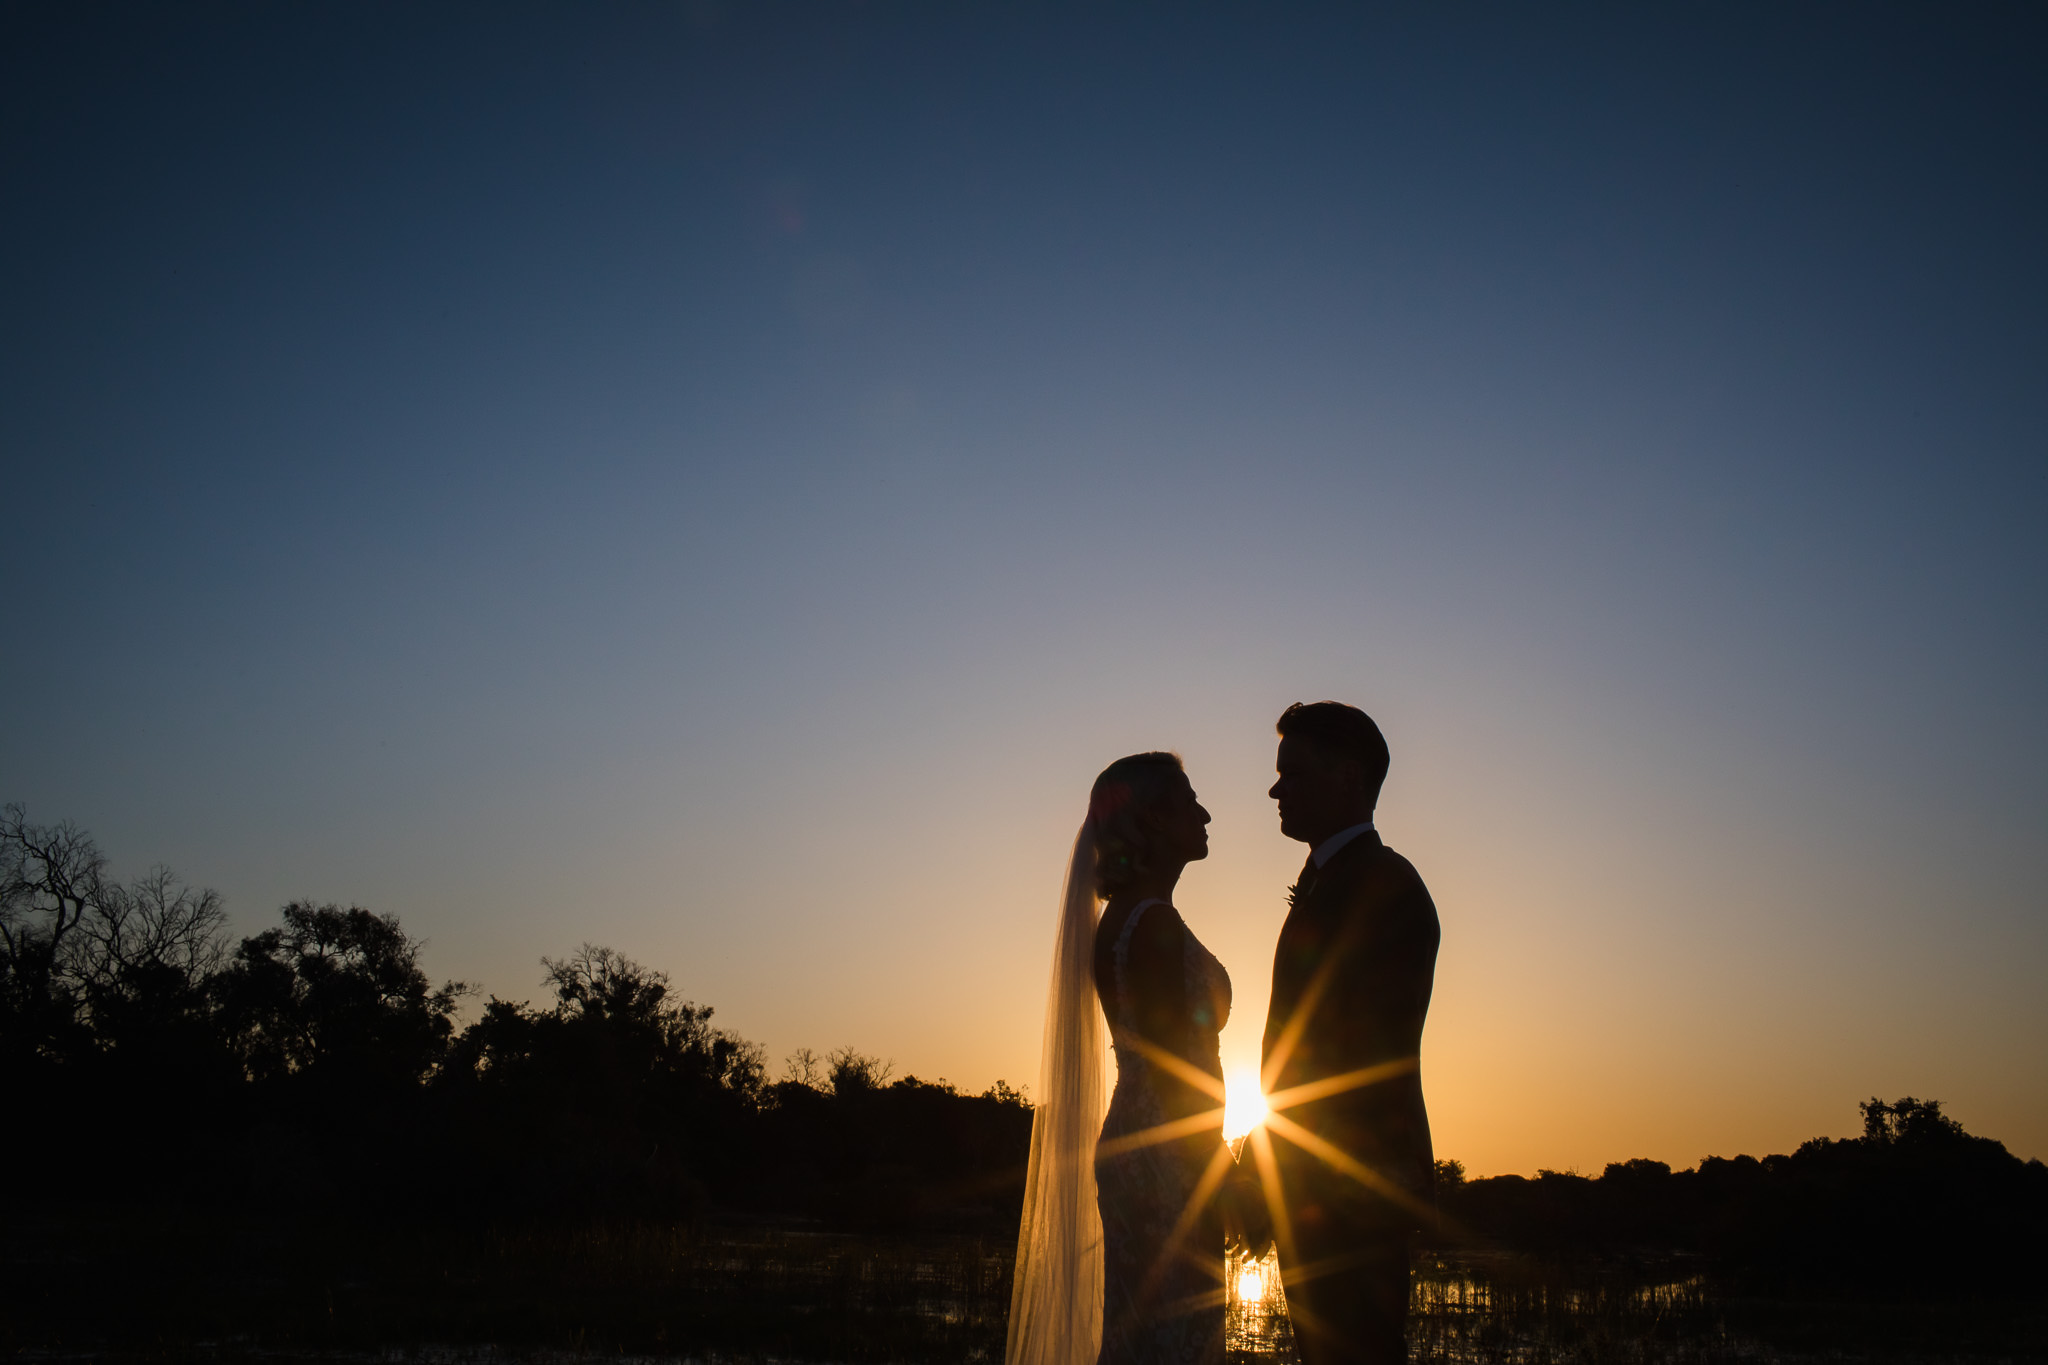 Bride and groom silhouetted at sunset against blue sky with sun star flaring between their bodies